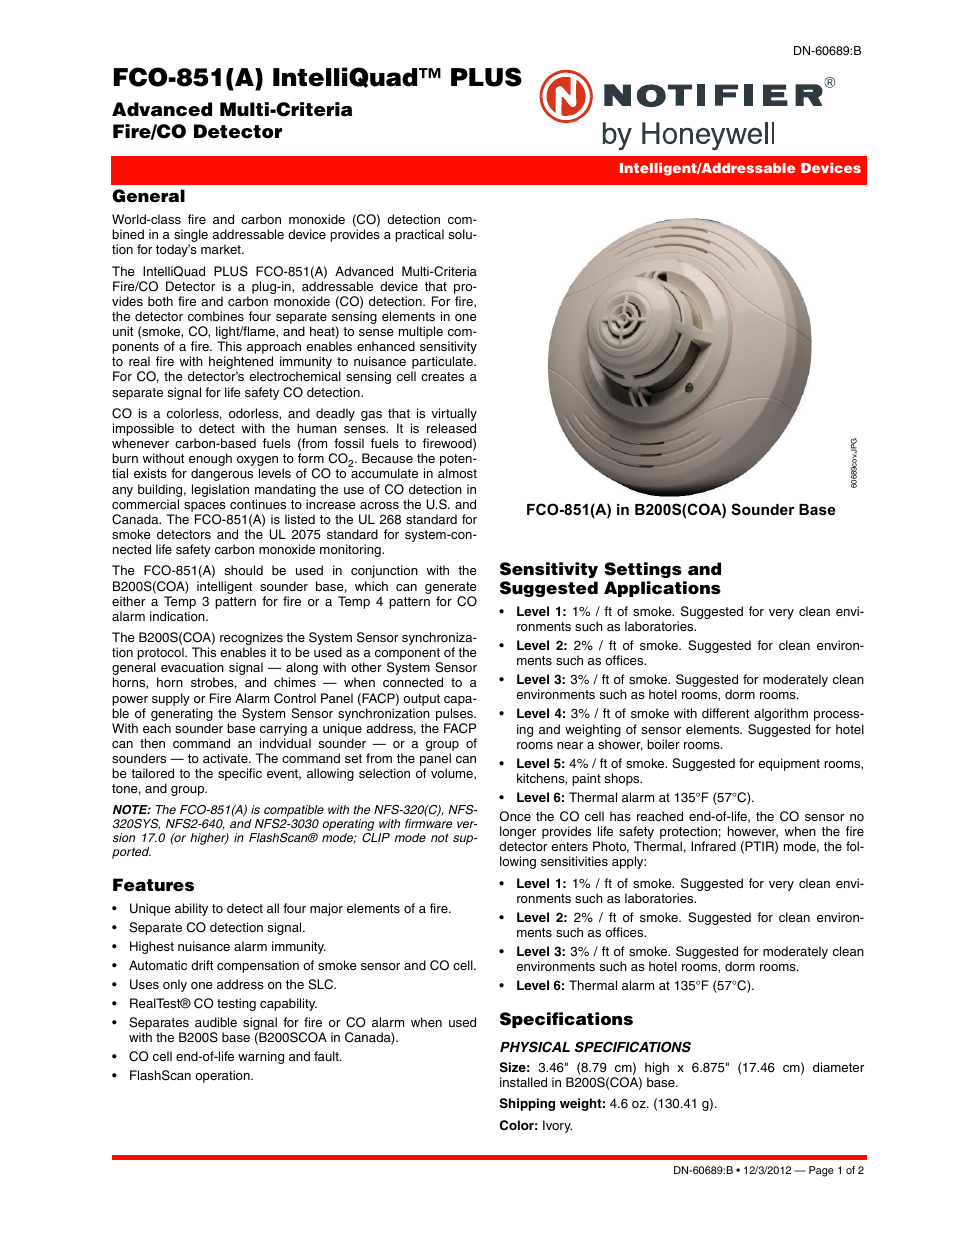 Notifier FCO-851 User Manual | 2 pages